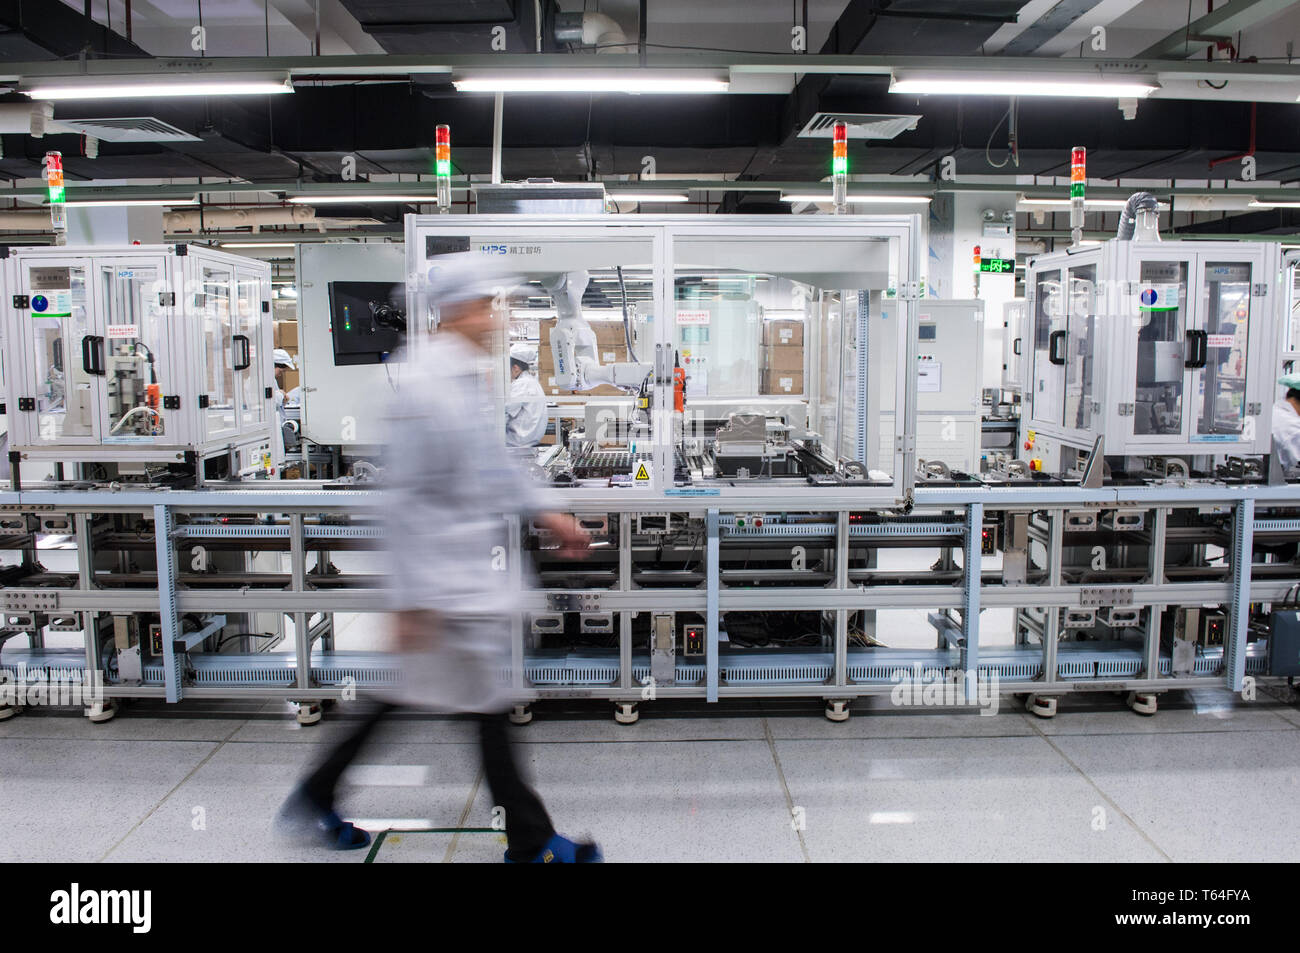 Beijing, China's Guangdong Province. 12th Dec, 2018. A worker passes by a smart production line of Hytera Communications Corporation Limited in Shenzhen, south China's Guangdong Province, Dec. 12, 2018. Credit: Mao Siqian/Xinhua/Alamy Live News - Stock Image